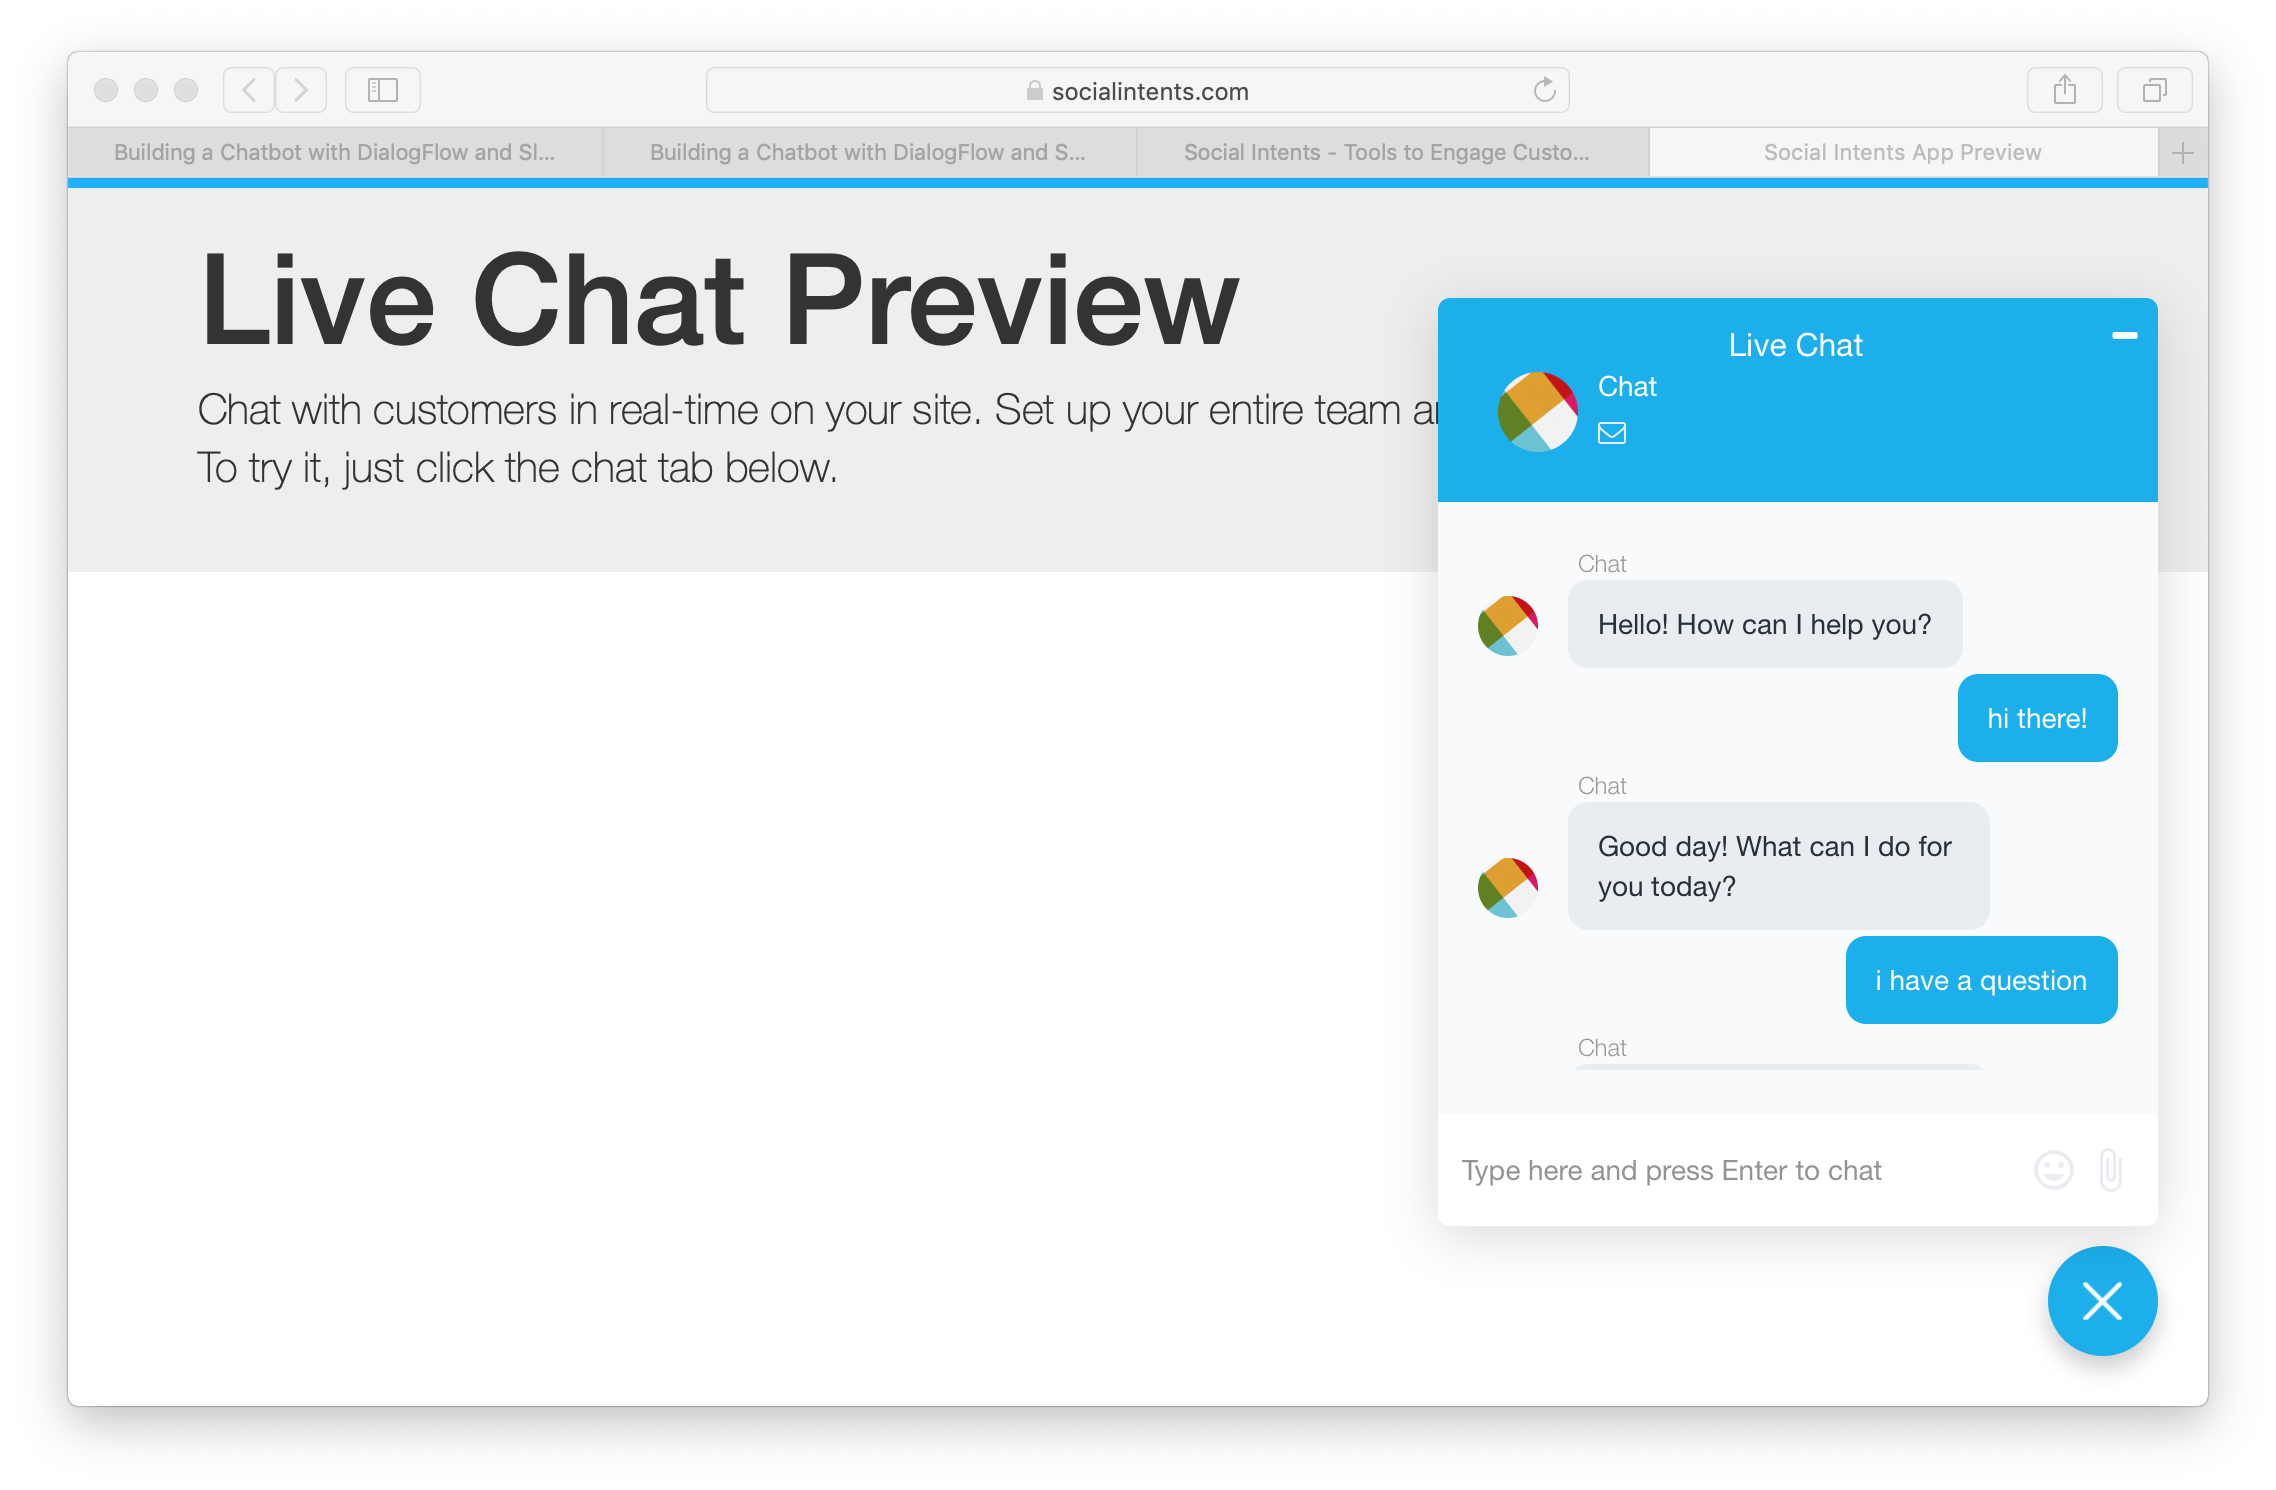 Building a Chatbot with DialogFlow and Slack - Social Intents